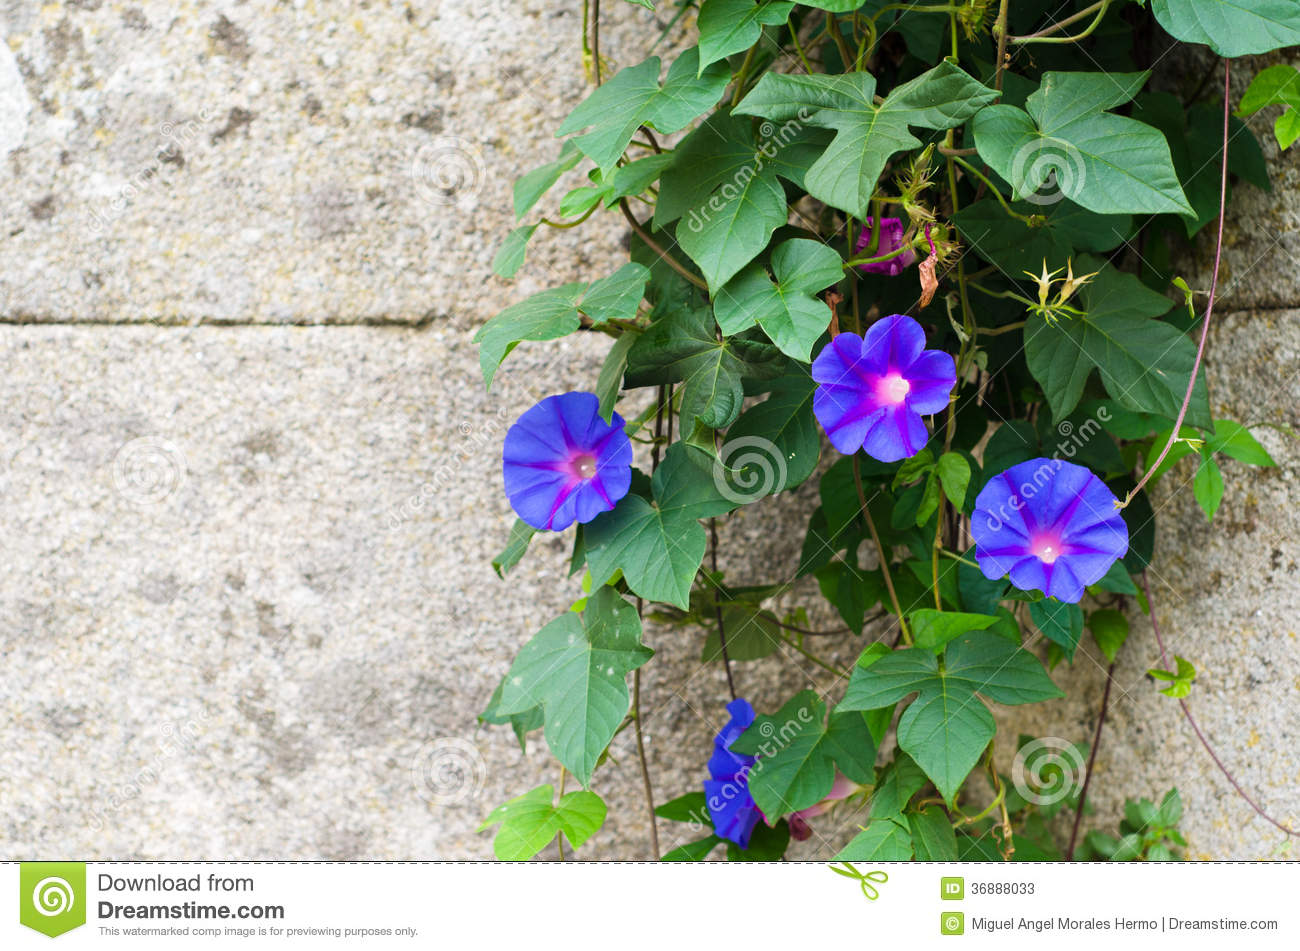 Download Purpurea dell'ipomoea immagine stock. Immagine di luminoso - 36888033